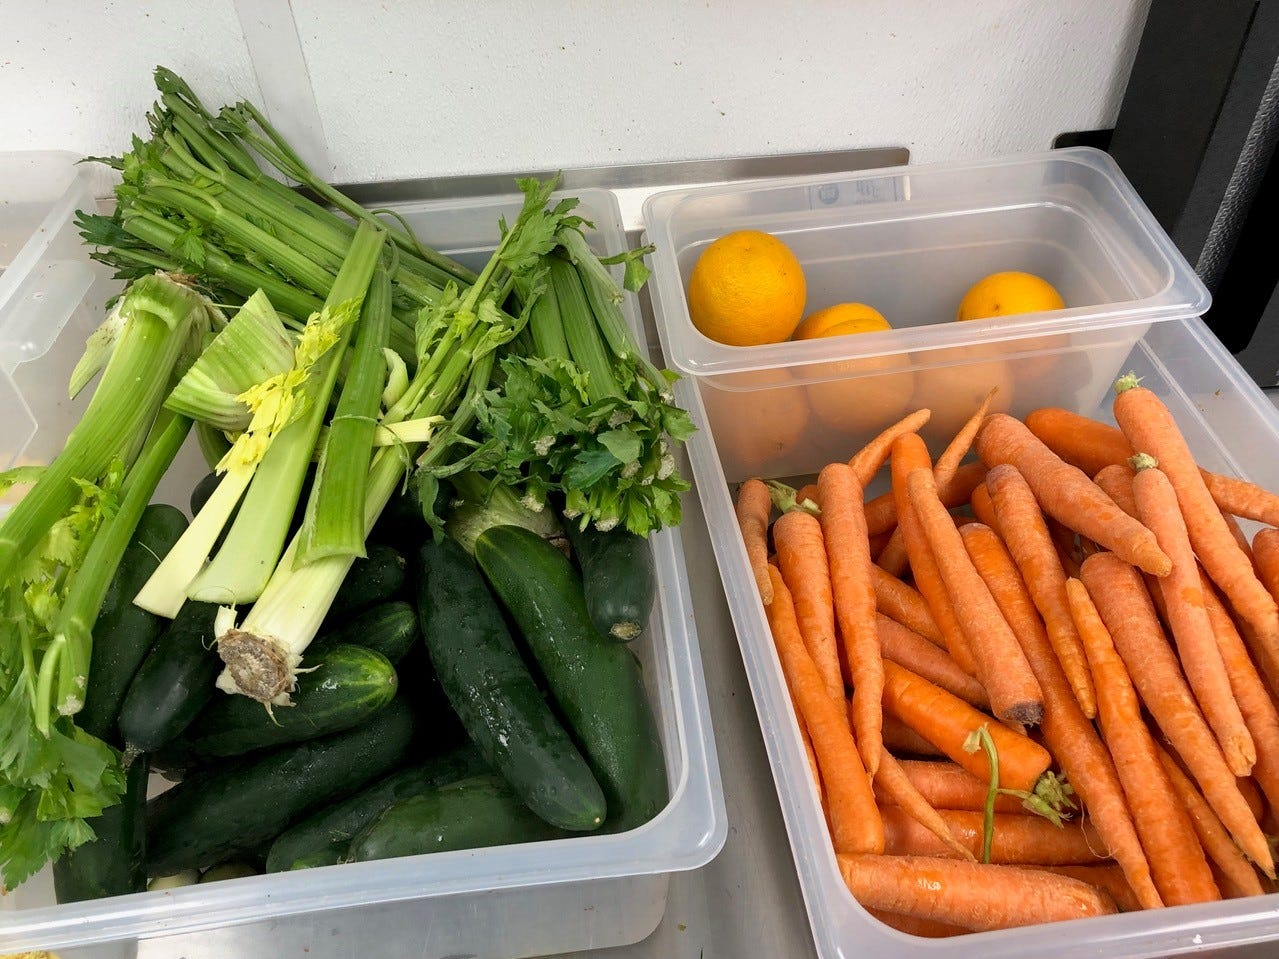 Some of the fresh fruit and vegetables used at Roots Juice Bar in downtown Redding.